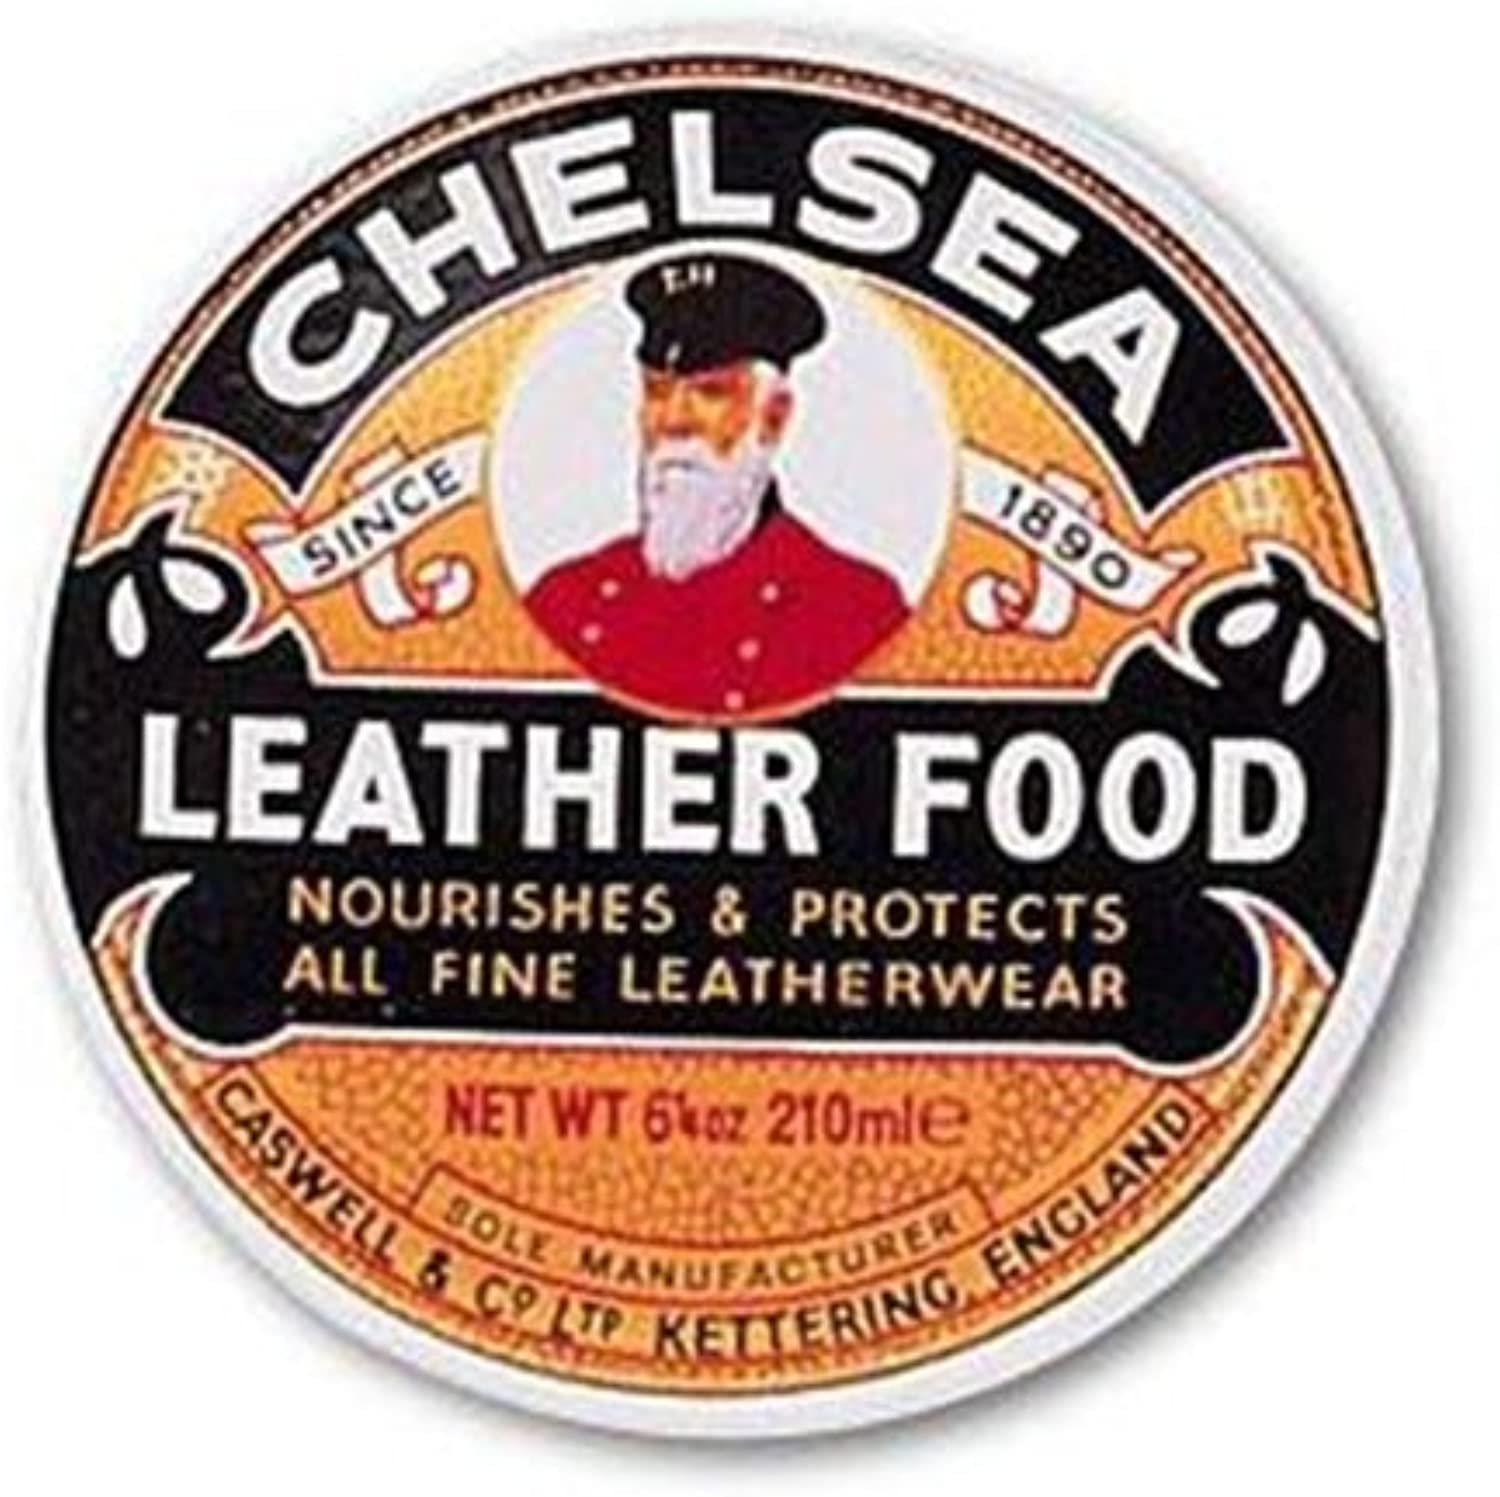 REUSCH 7960 Chelsea Leather Food  Clear